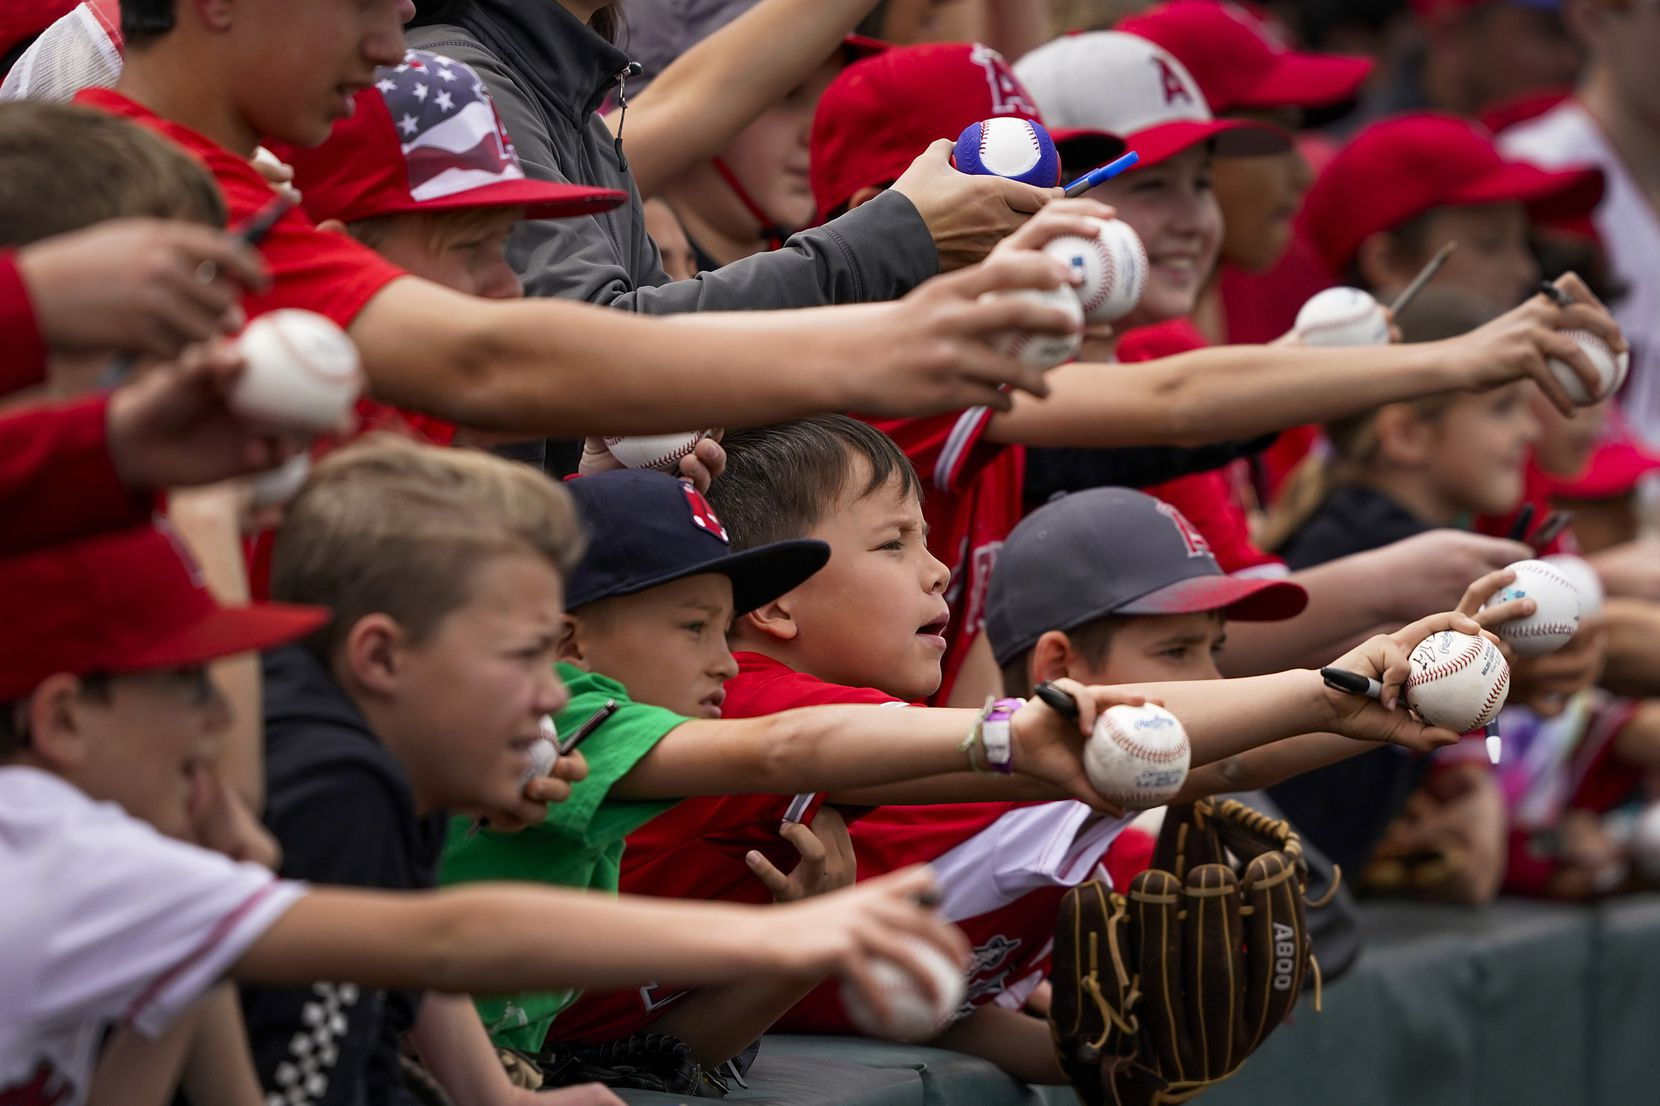 Young fans call out for players to sign autographs before of a spring training game between the Texas Rangers and the Los Angeles Angels at Tempe Diablo Stadium on Friday, Feb. 28, 2020, in Tempe, Ariz.